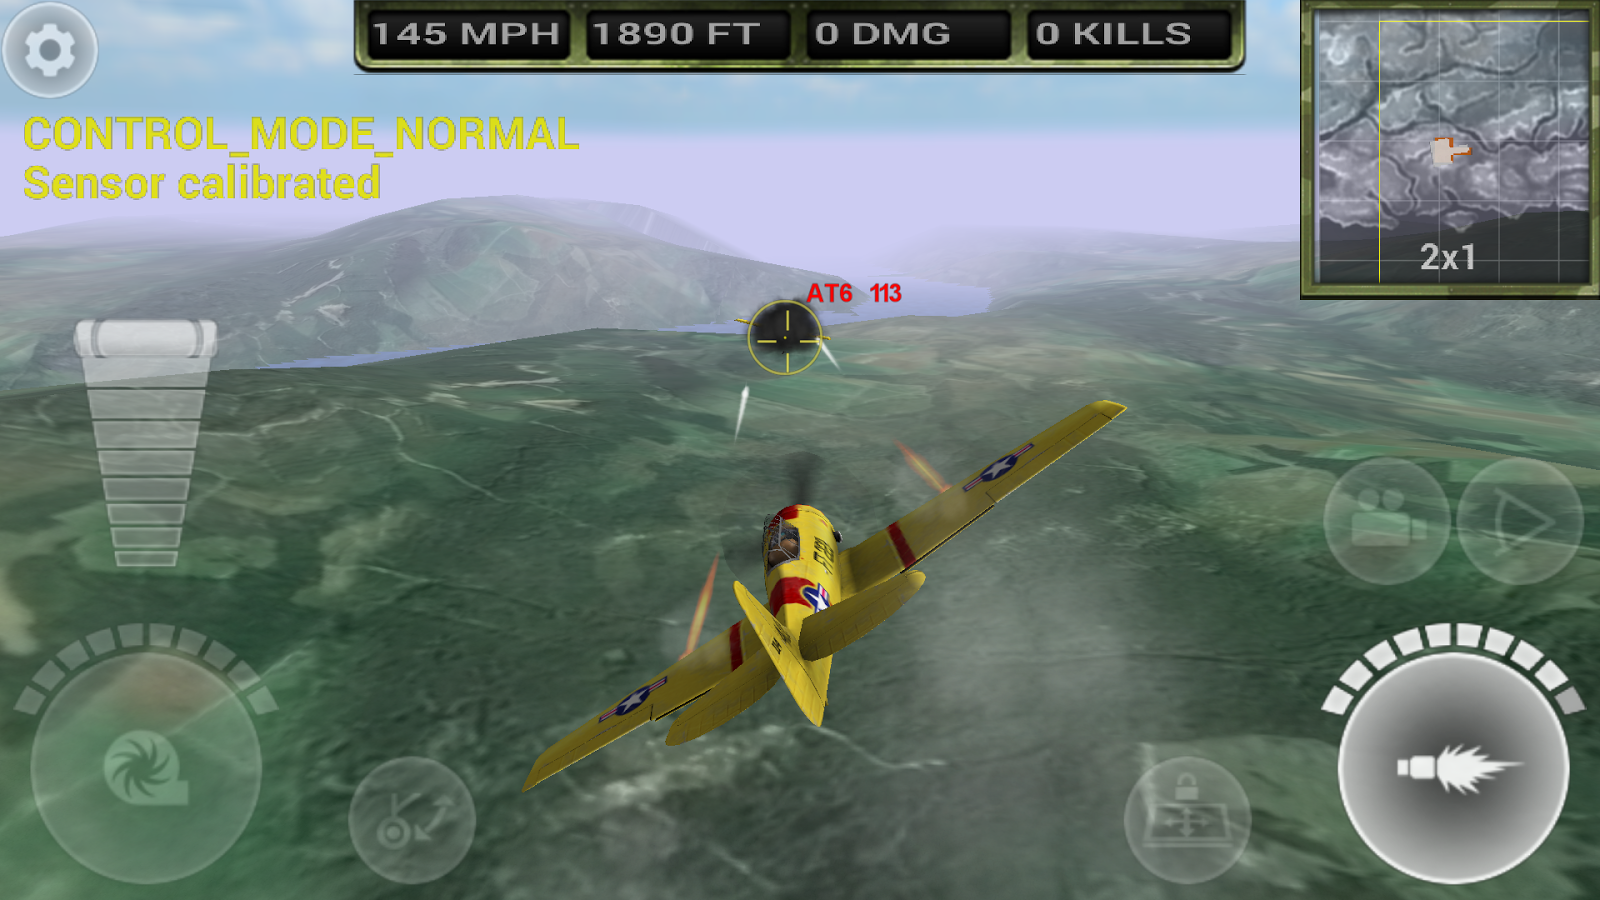 FighterWing 2 Flight Simulator 3